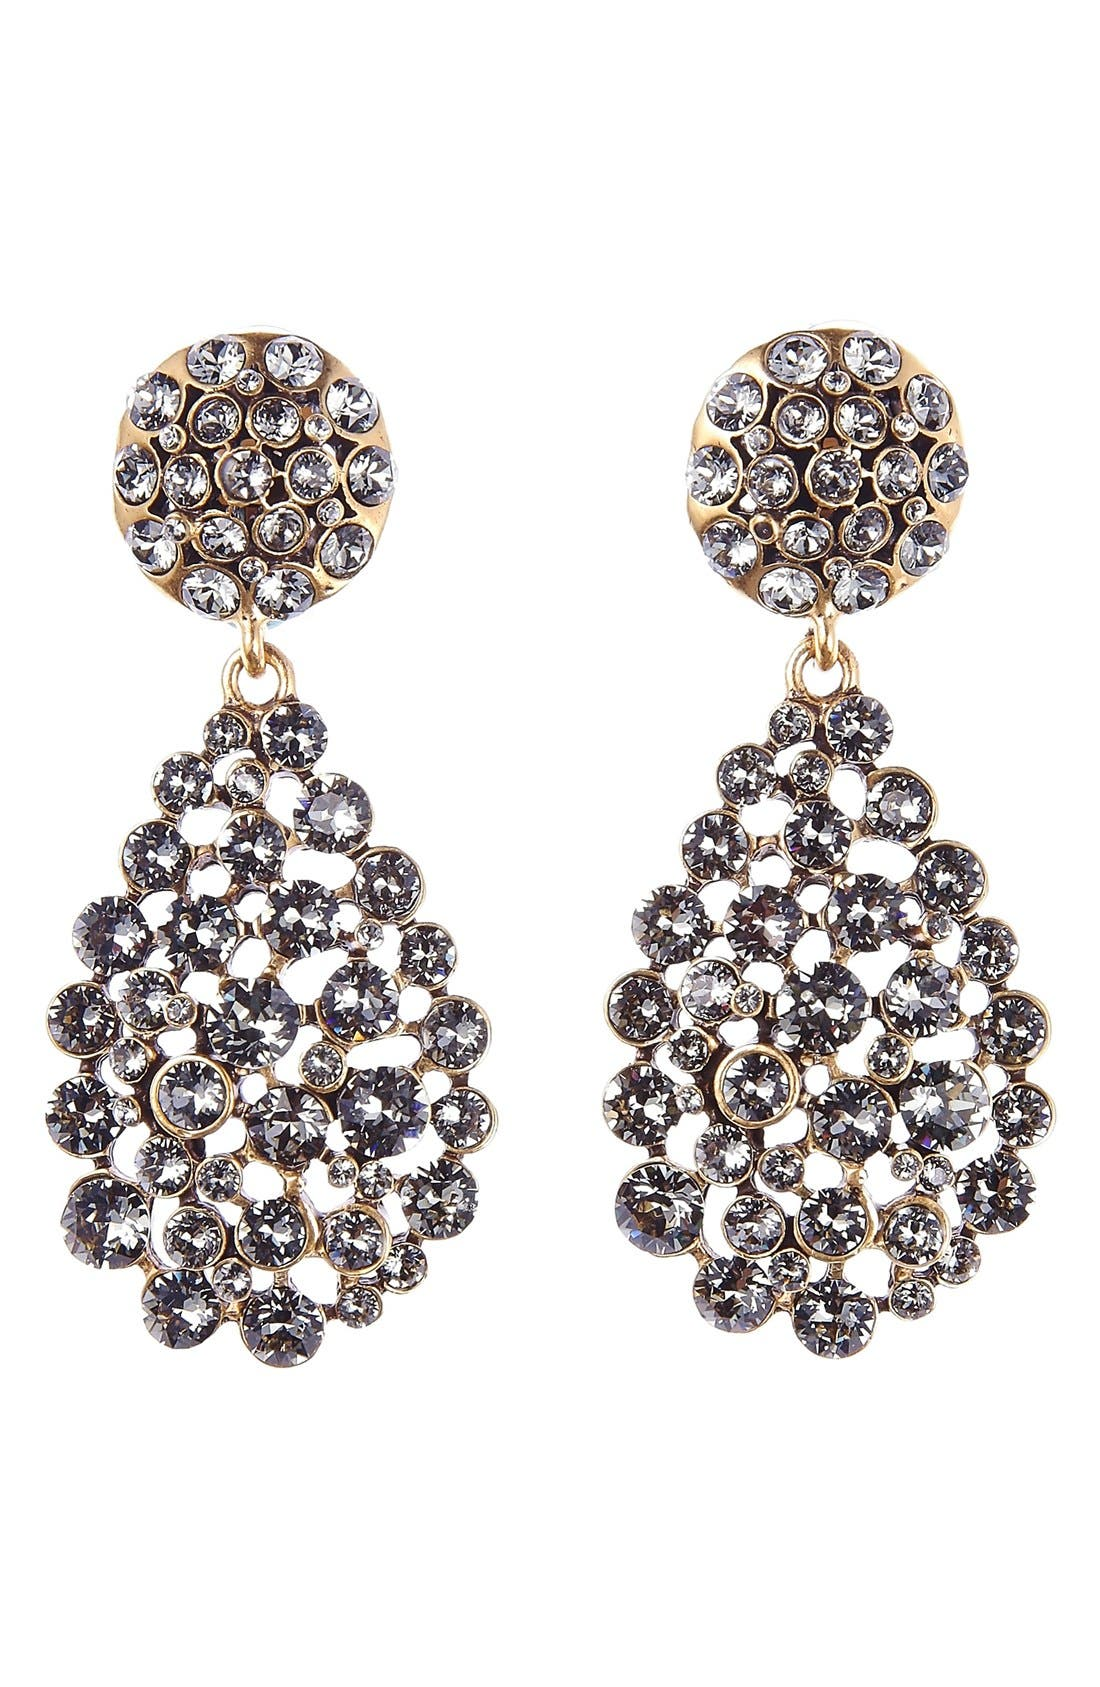 Oscar de la Renta Teardrop Earrings